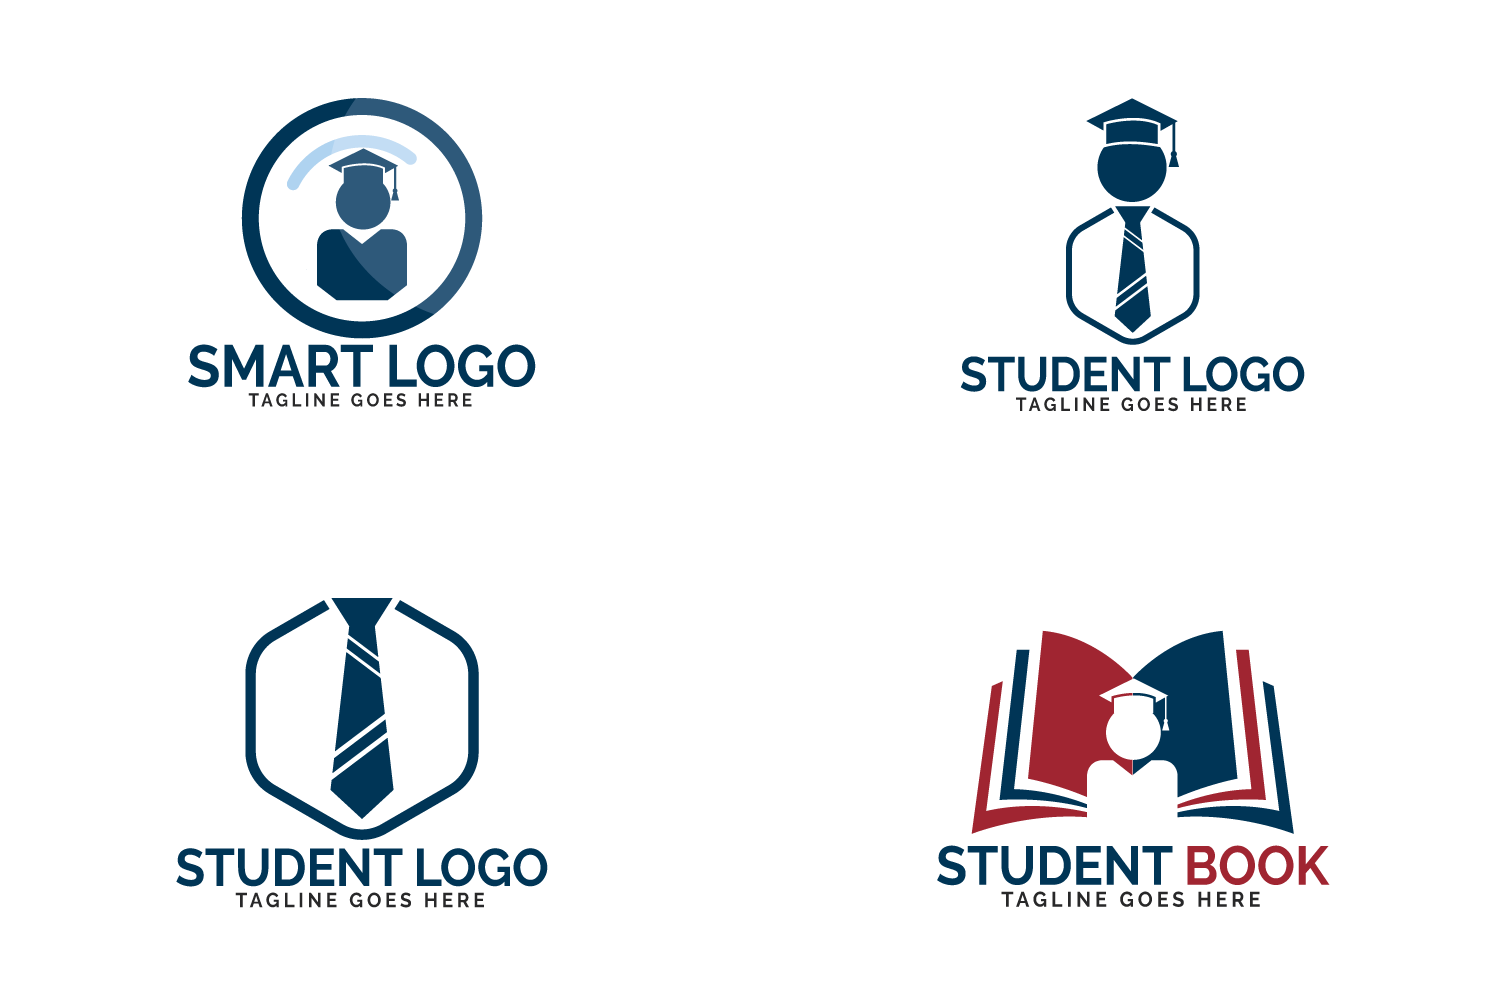 Student logo set. Educational and institutional logo design. example image 2